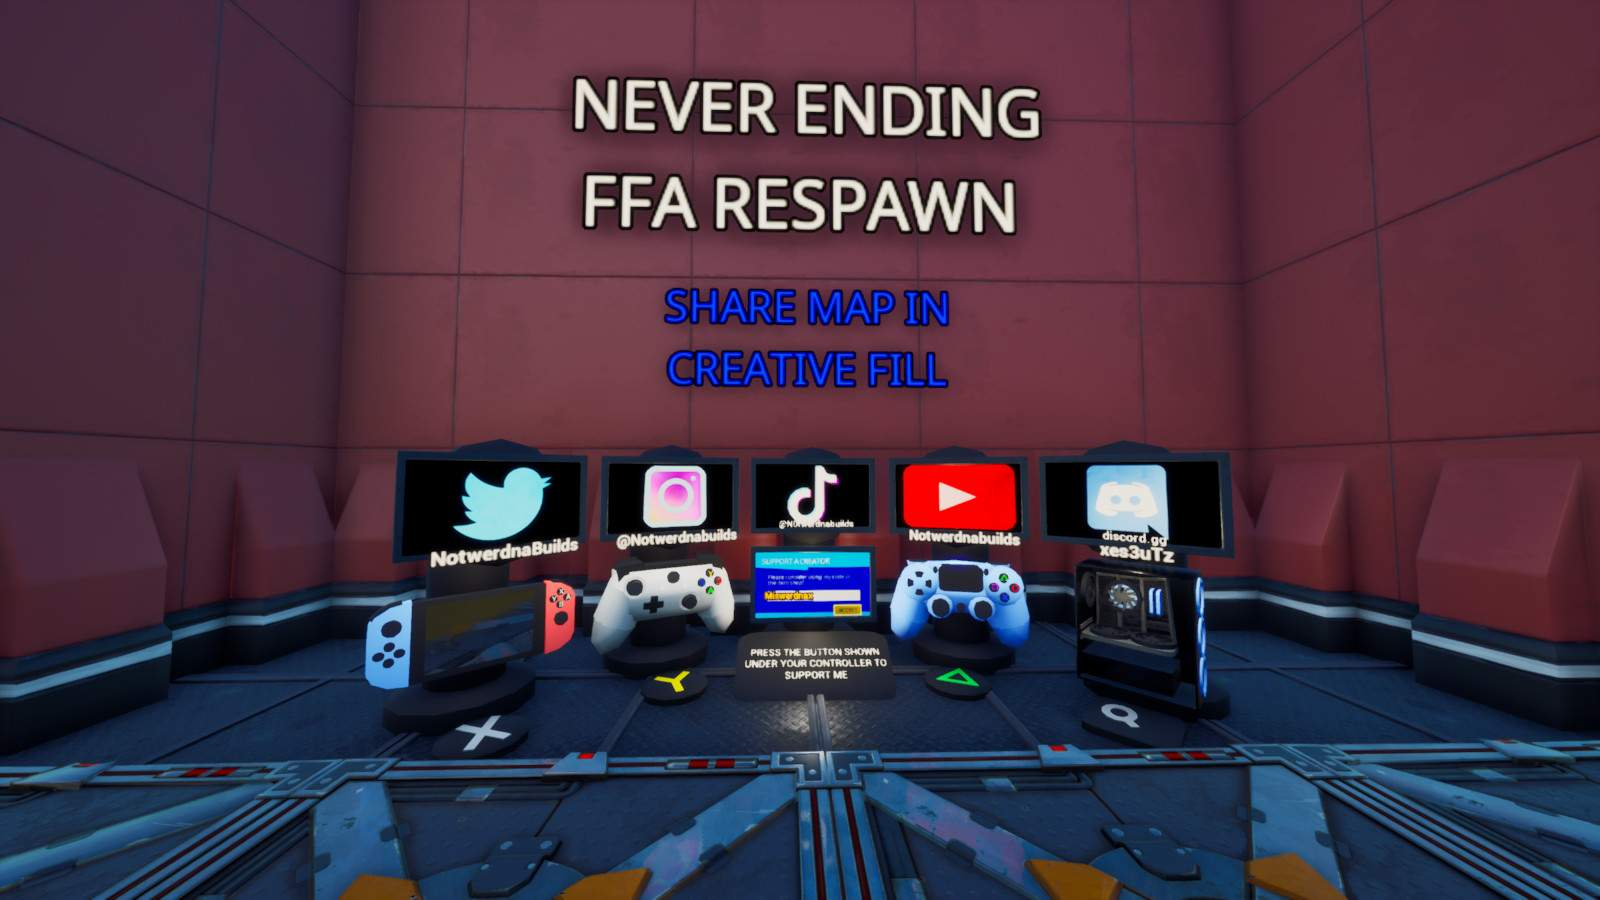 NEVERENDING FFA FILL